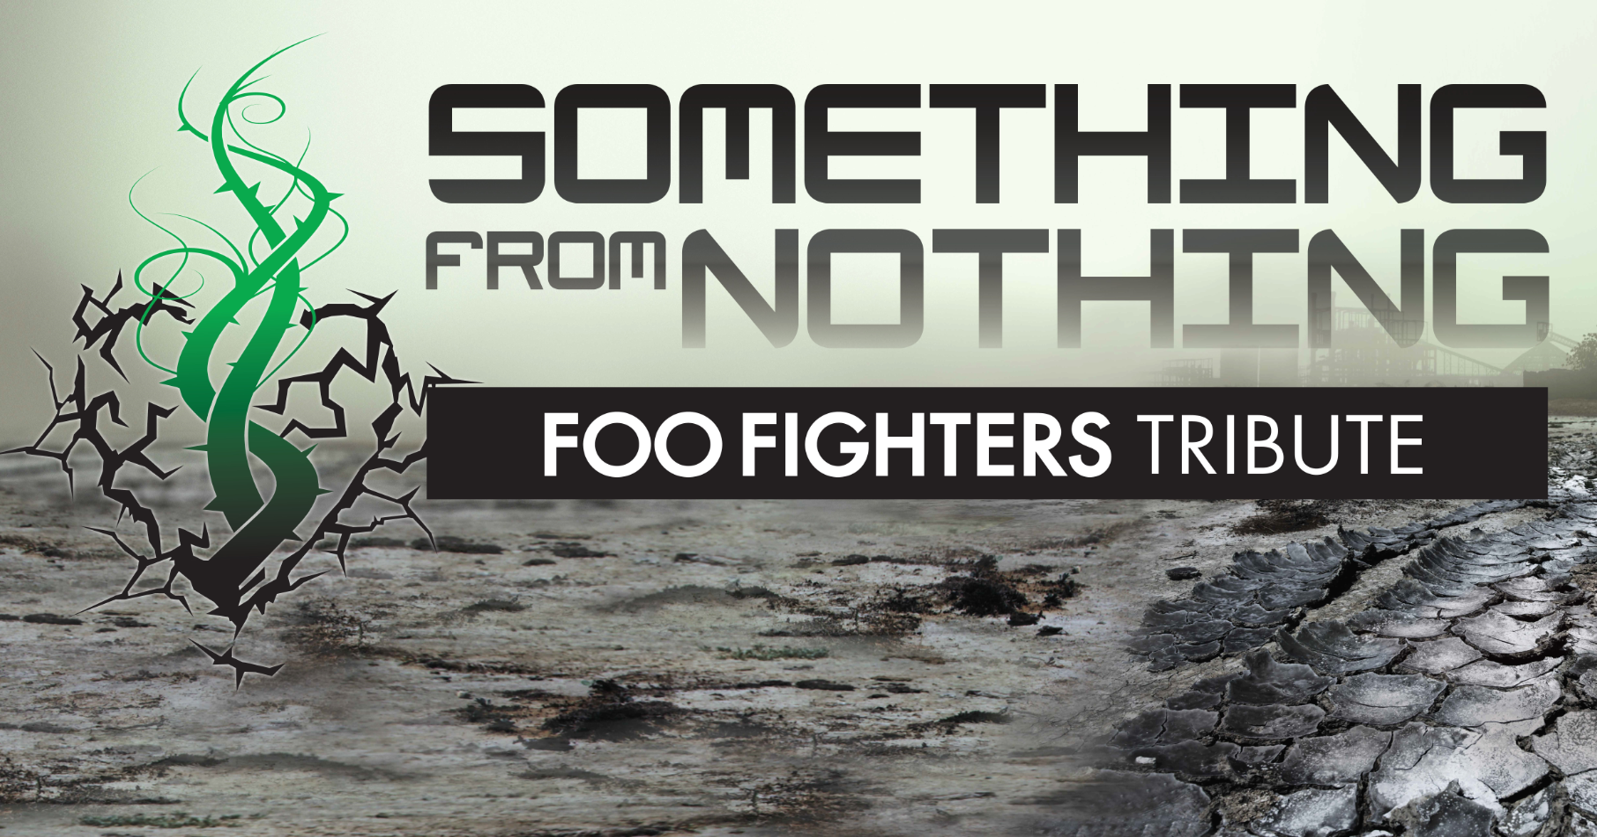 http://www.whirlwindent.com/promotional/UserUploads/SomethingFromNothing-FooFightersShow/Facebook6tVe2.png